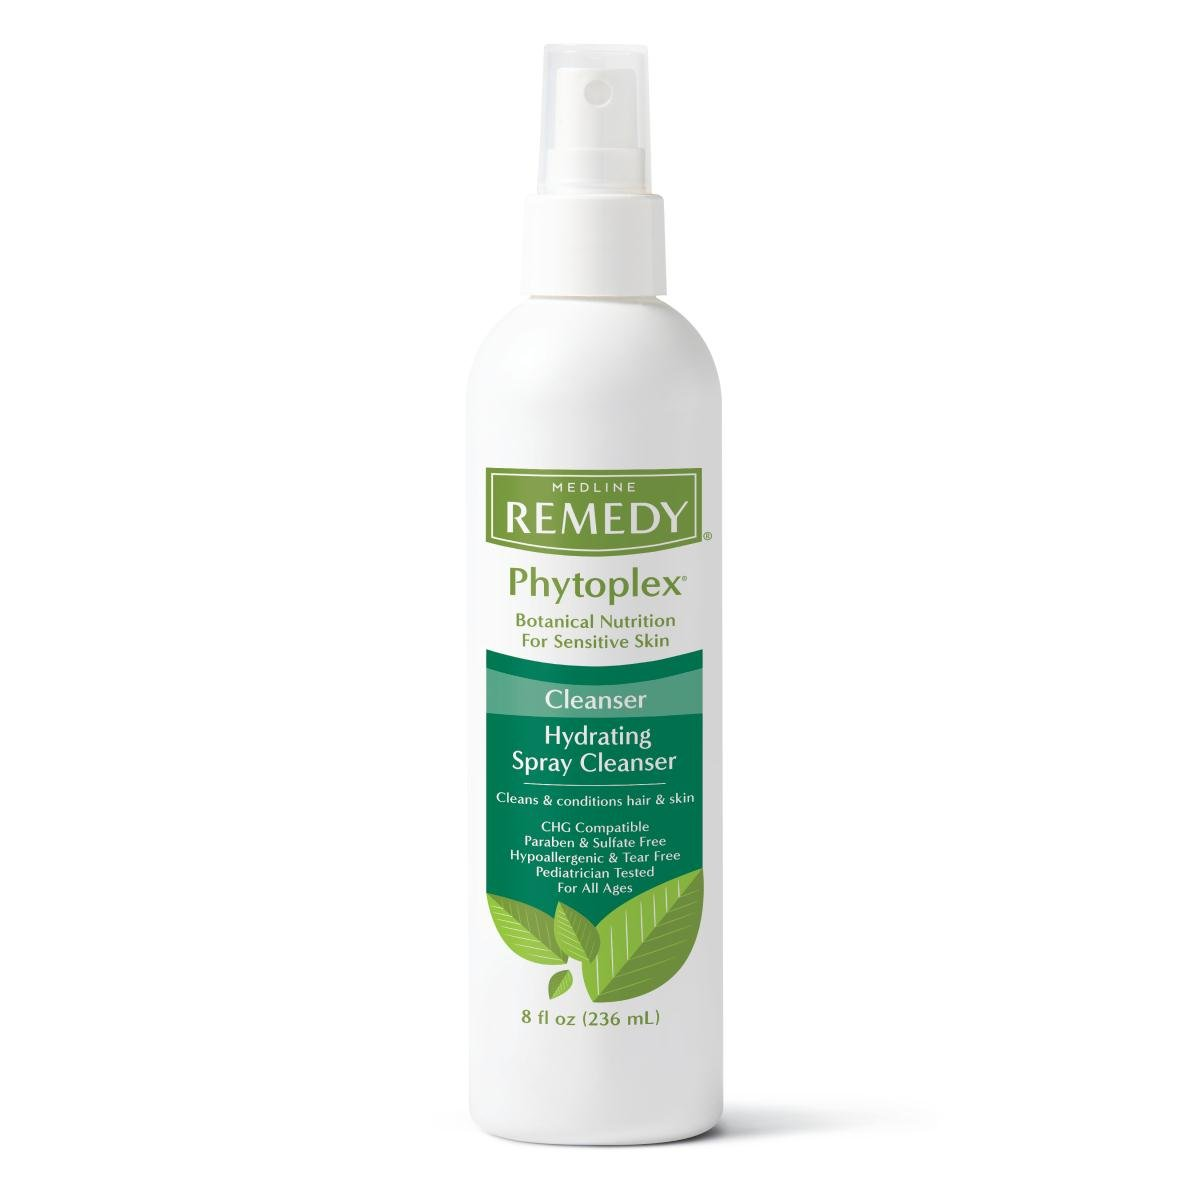 Medline MSC092208 Remedy Phytoplex No-Rinse Hydrating Spray Cleanser, 8 oz (Pack of 12) by Medline